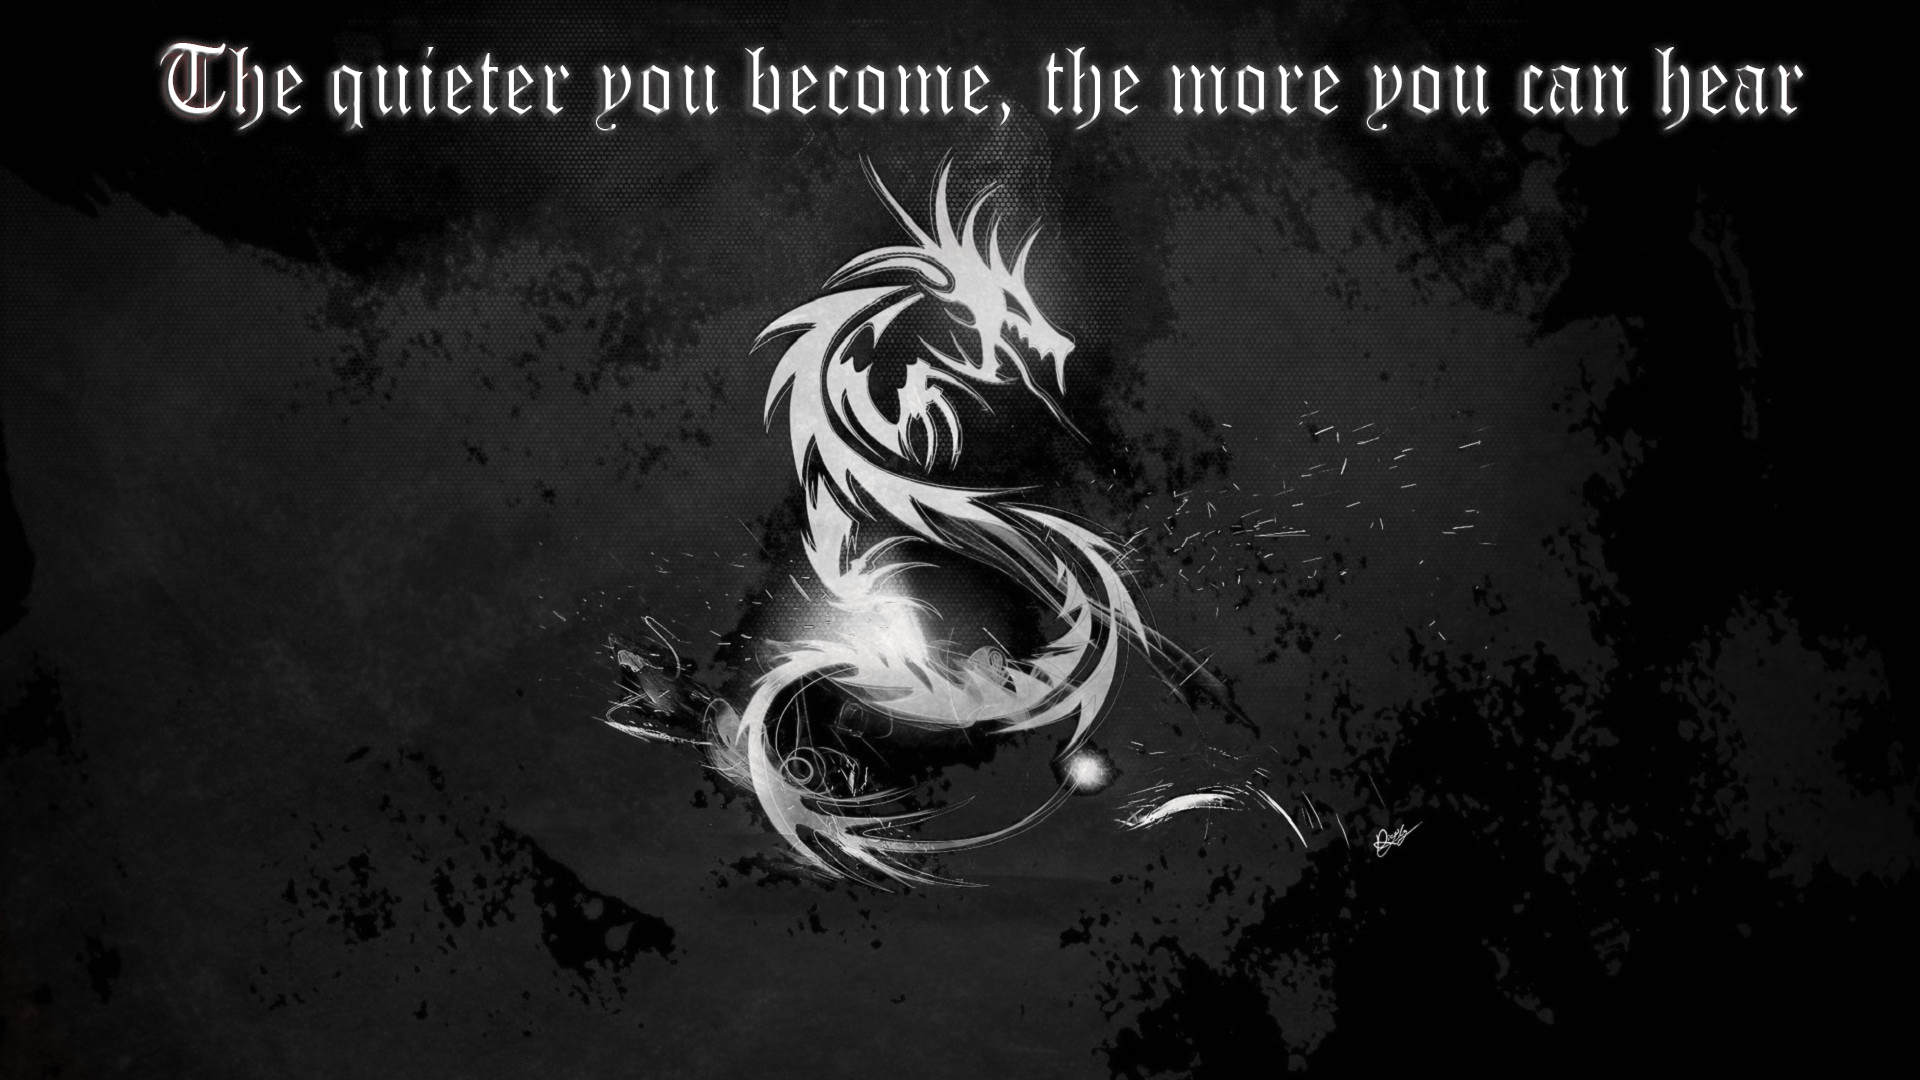 Quote Kali Linux Wallpapers HD Desktop and Mobile Backgrounds 1920x1080